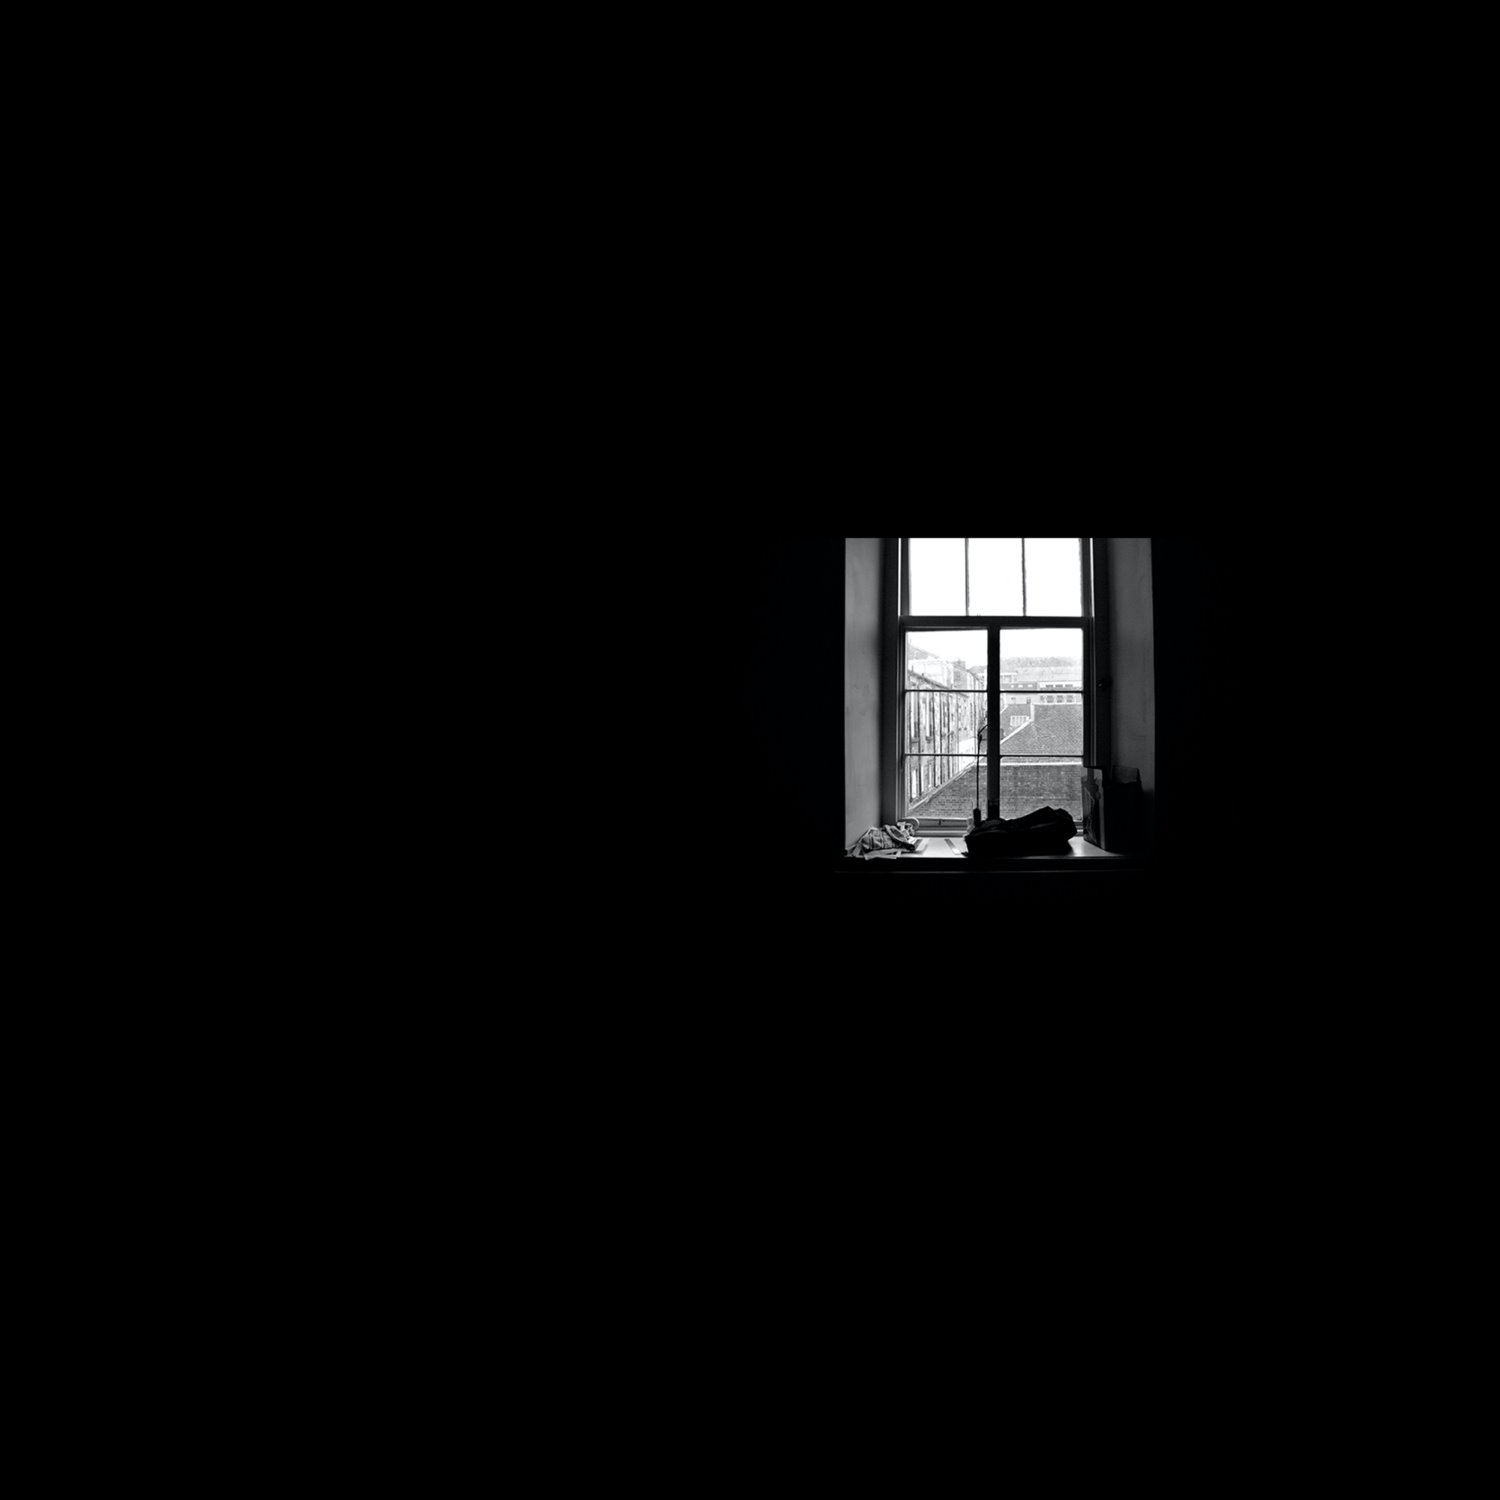 an underexposed image of a room